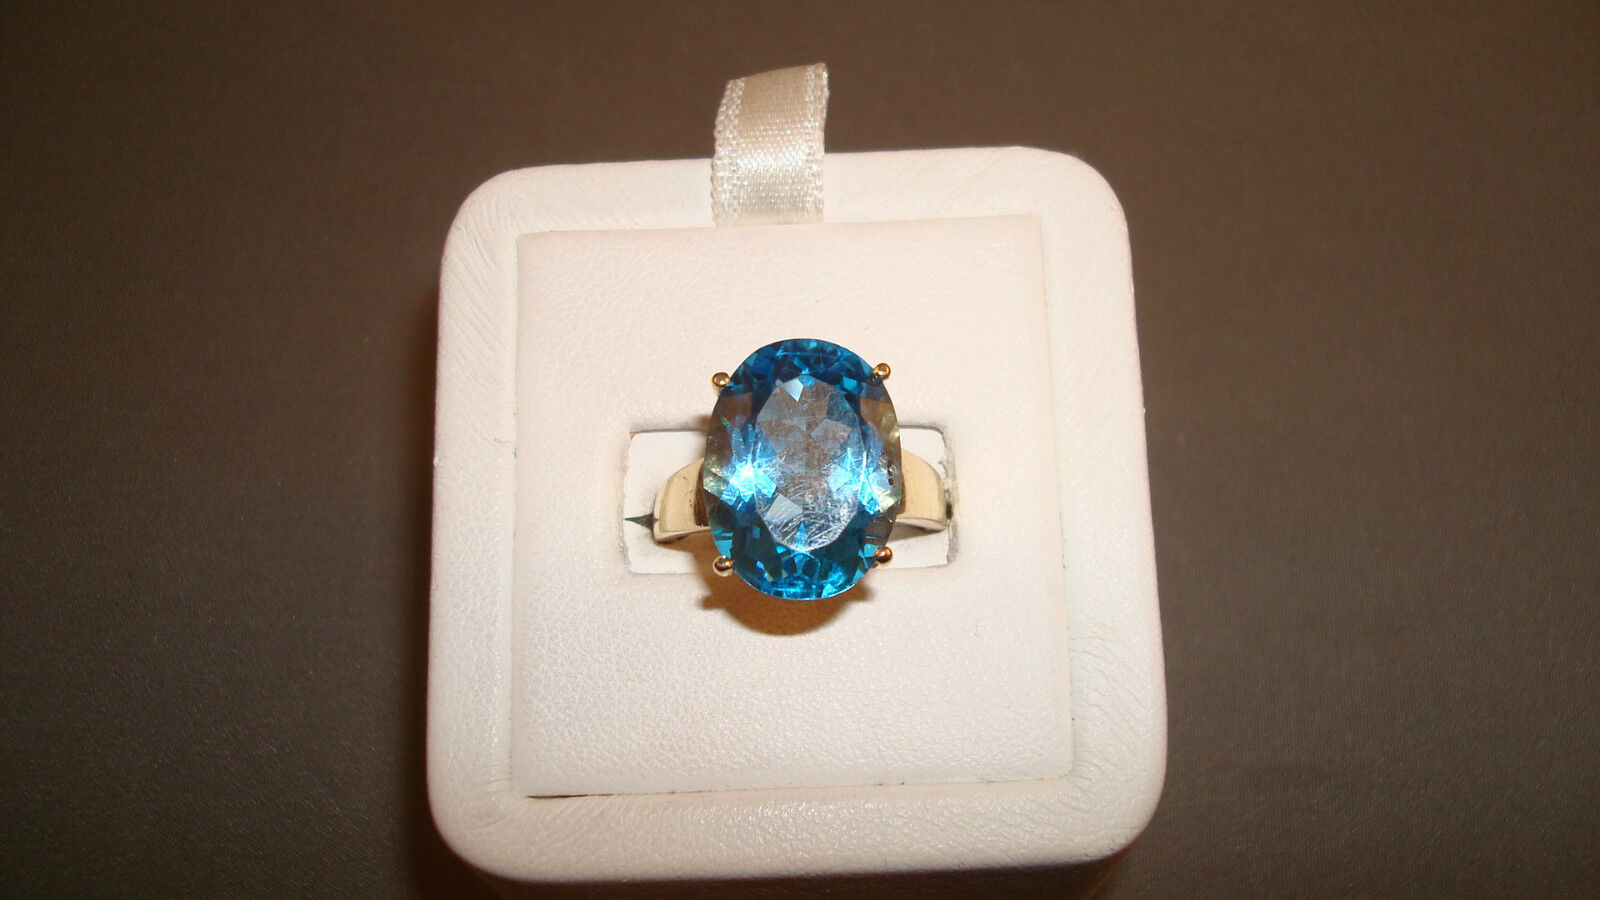 10K yg bluee Topaz Solitaire Ring - 5.5 Grams - Sz 7 - Approximate 8.5ctw.( CTa3)